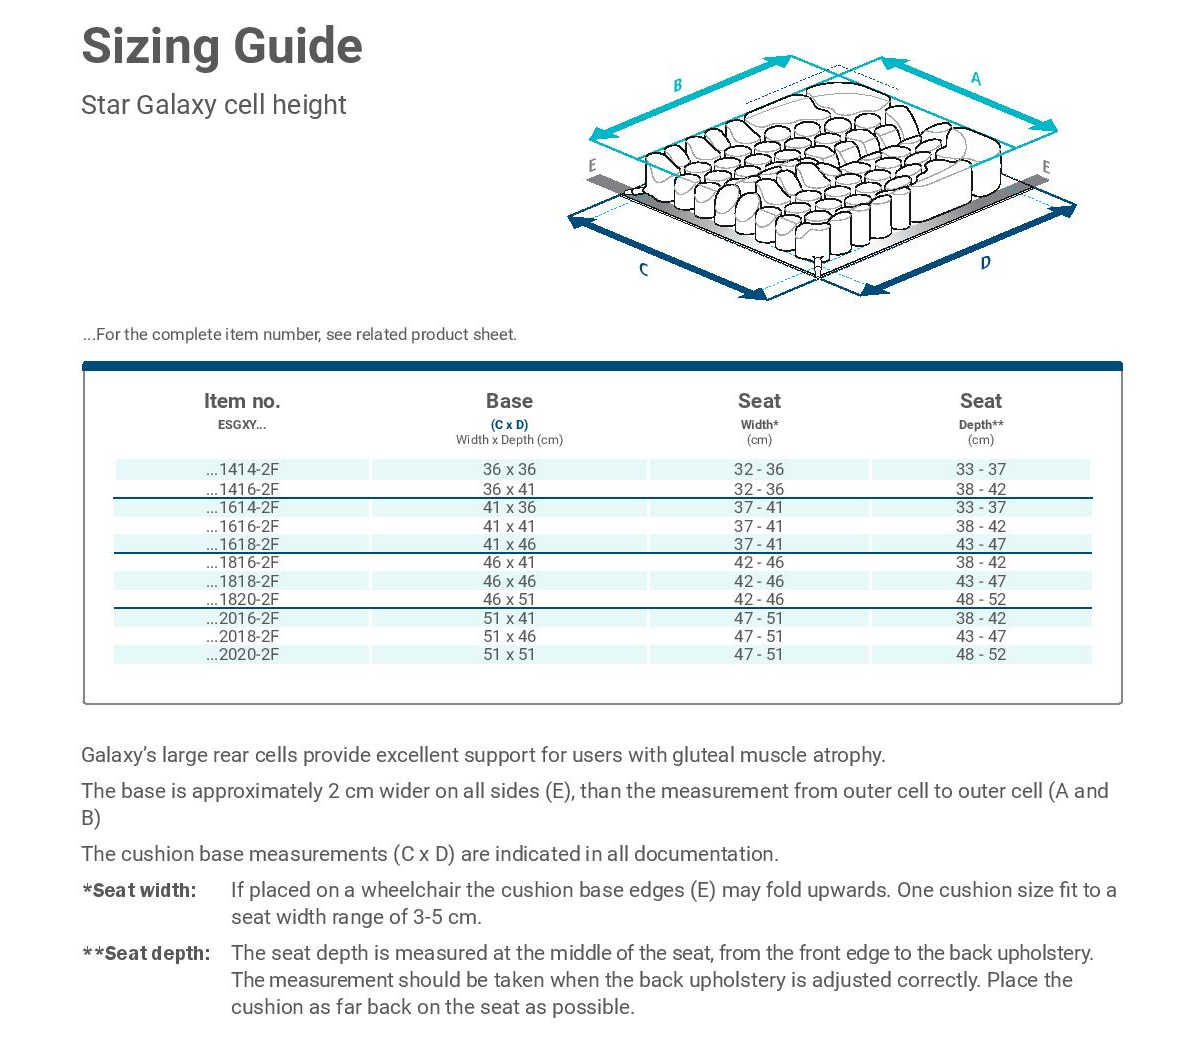 star galaxy cell sizing guide